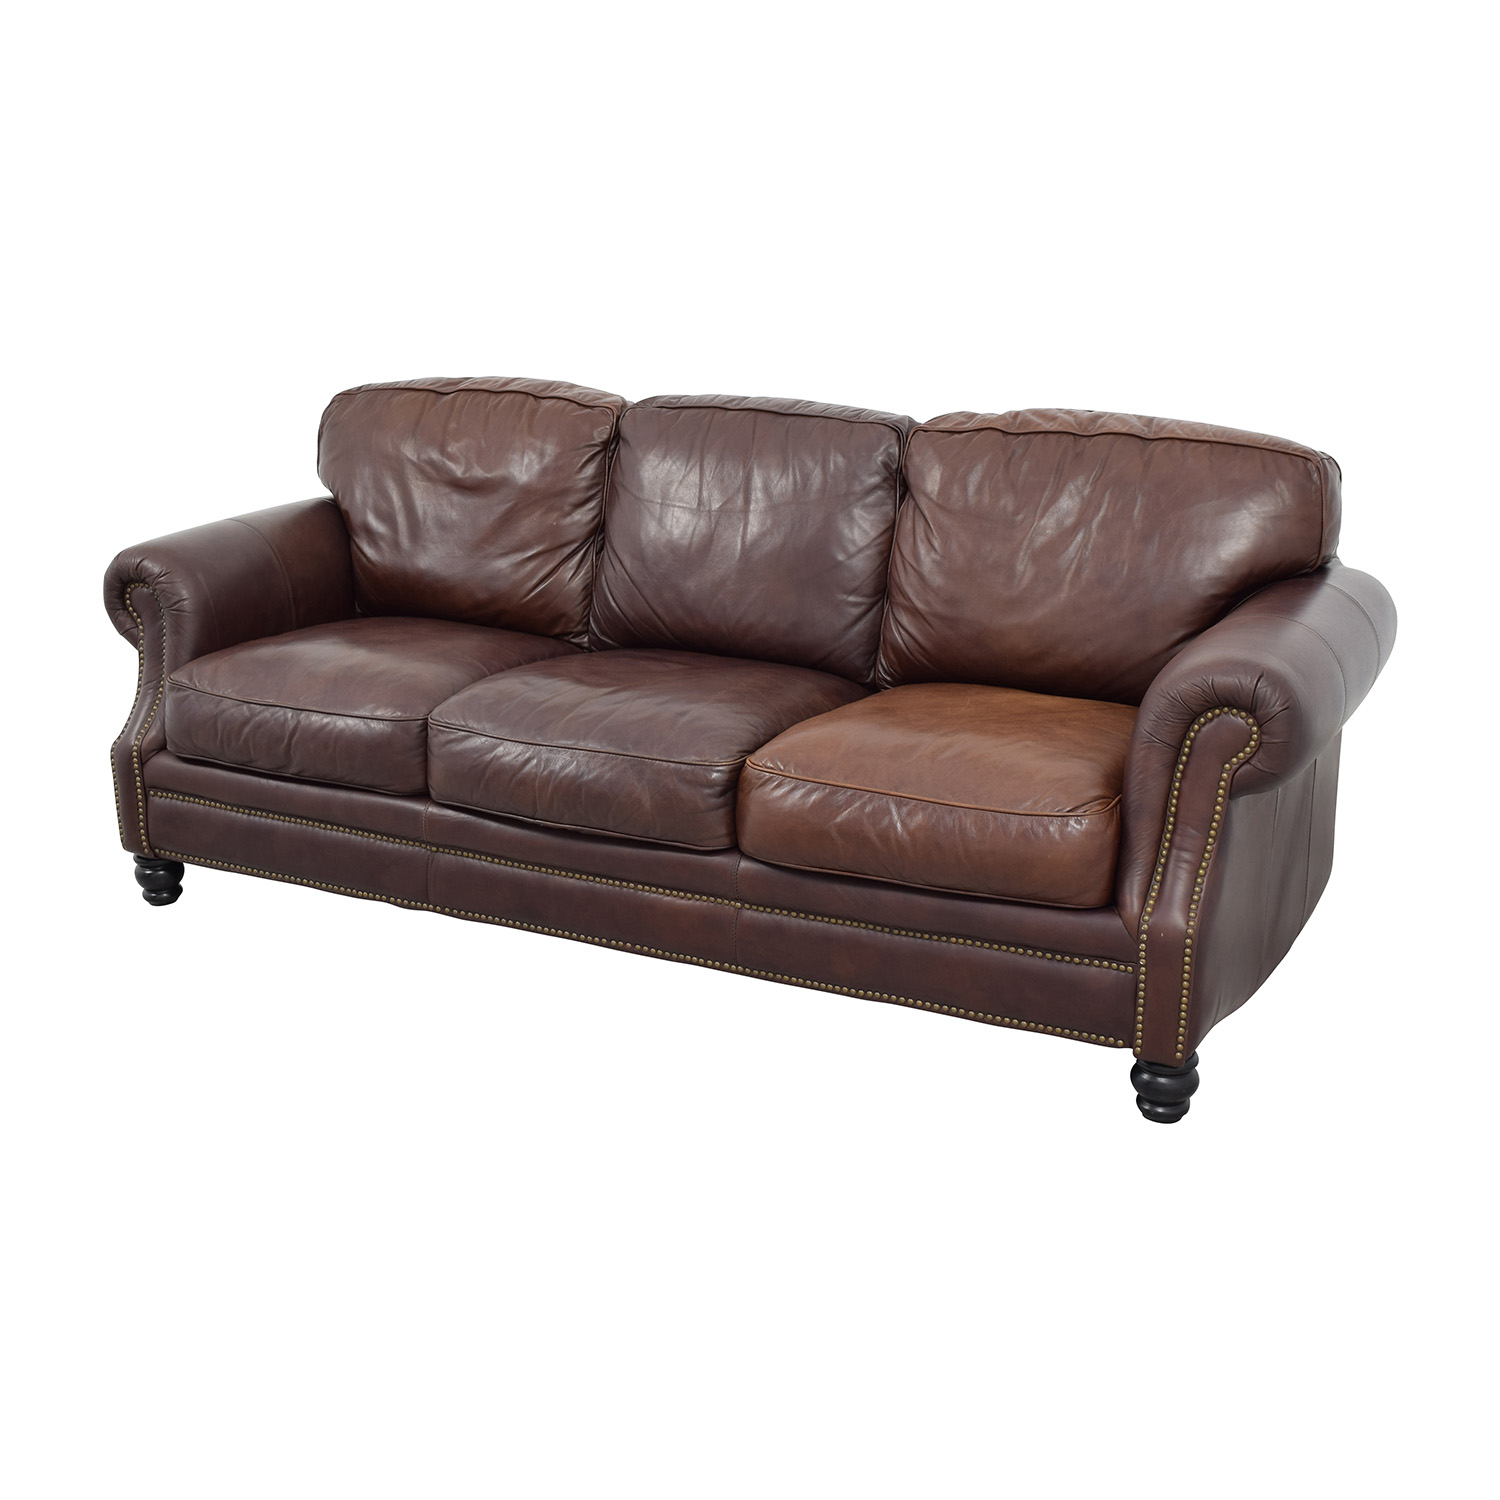 Leather studded sofa mesmerizing leather studded sofa new for Brown leather couch with studs